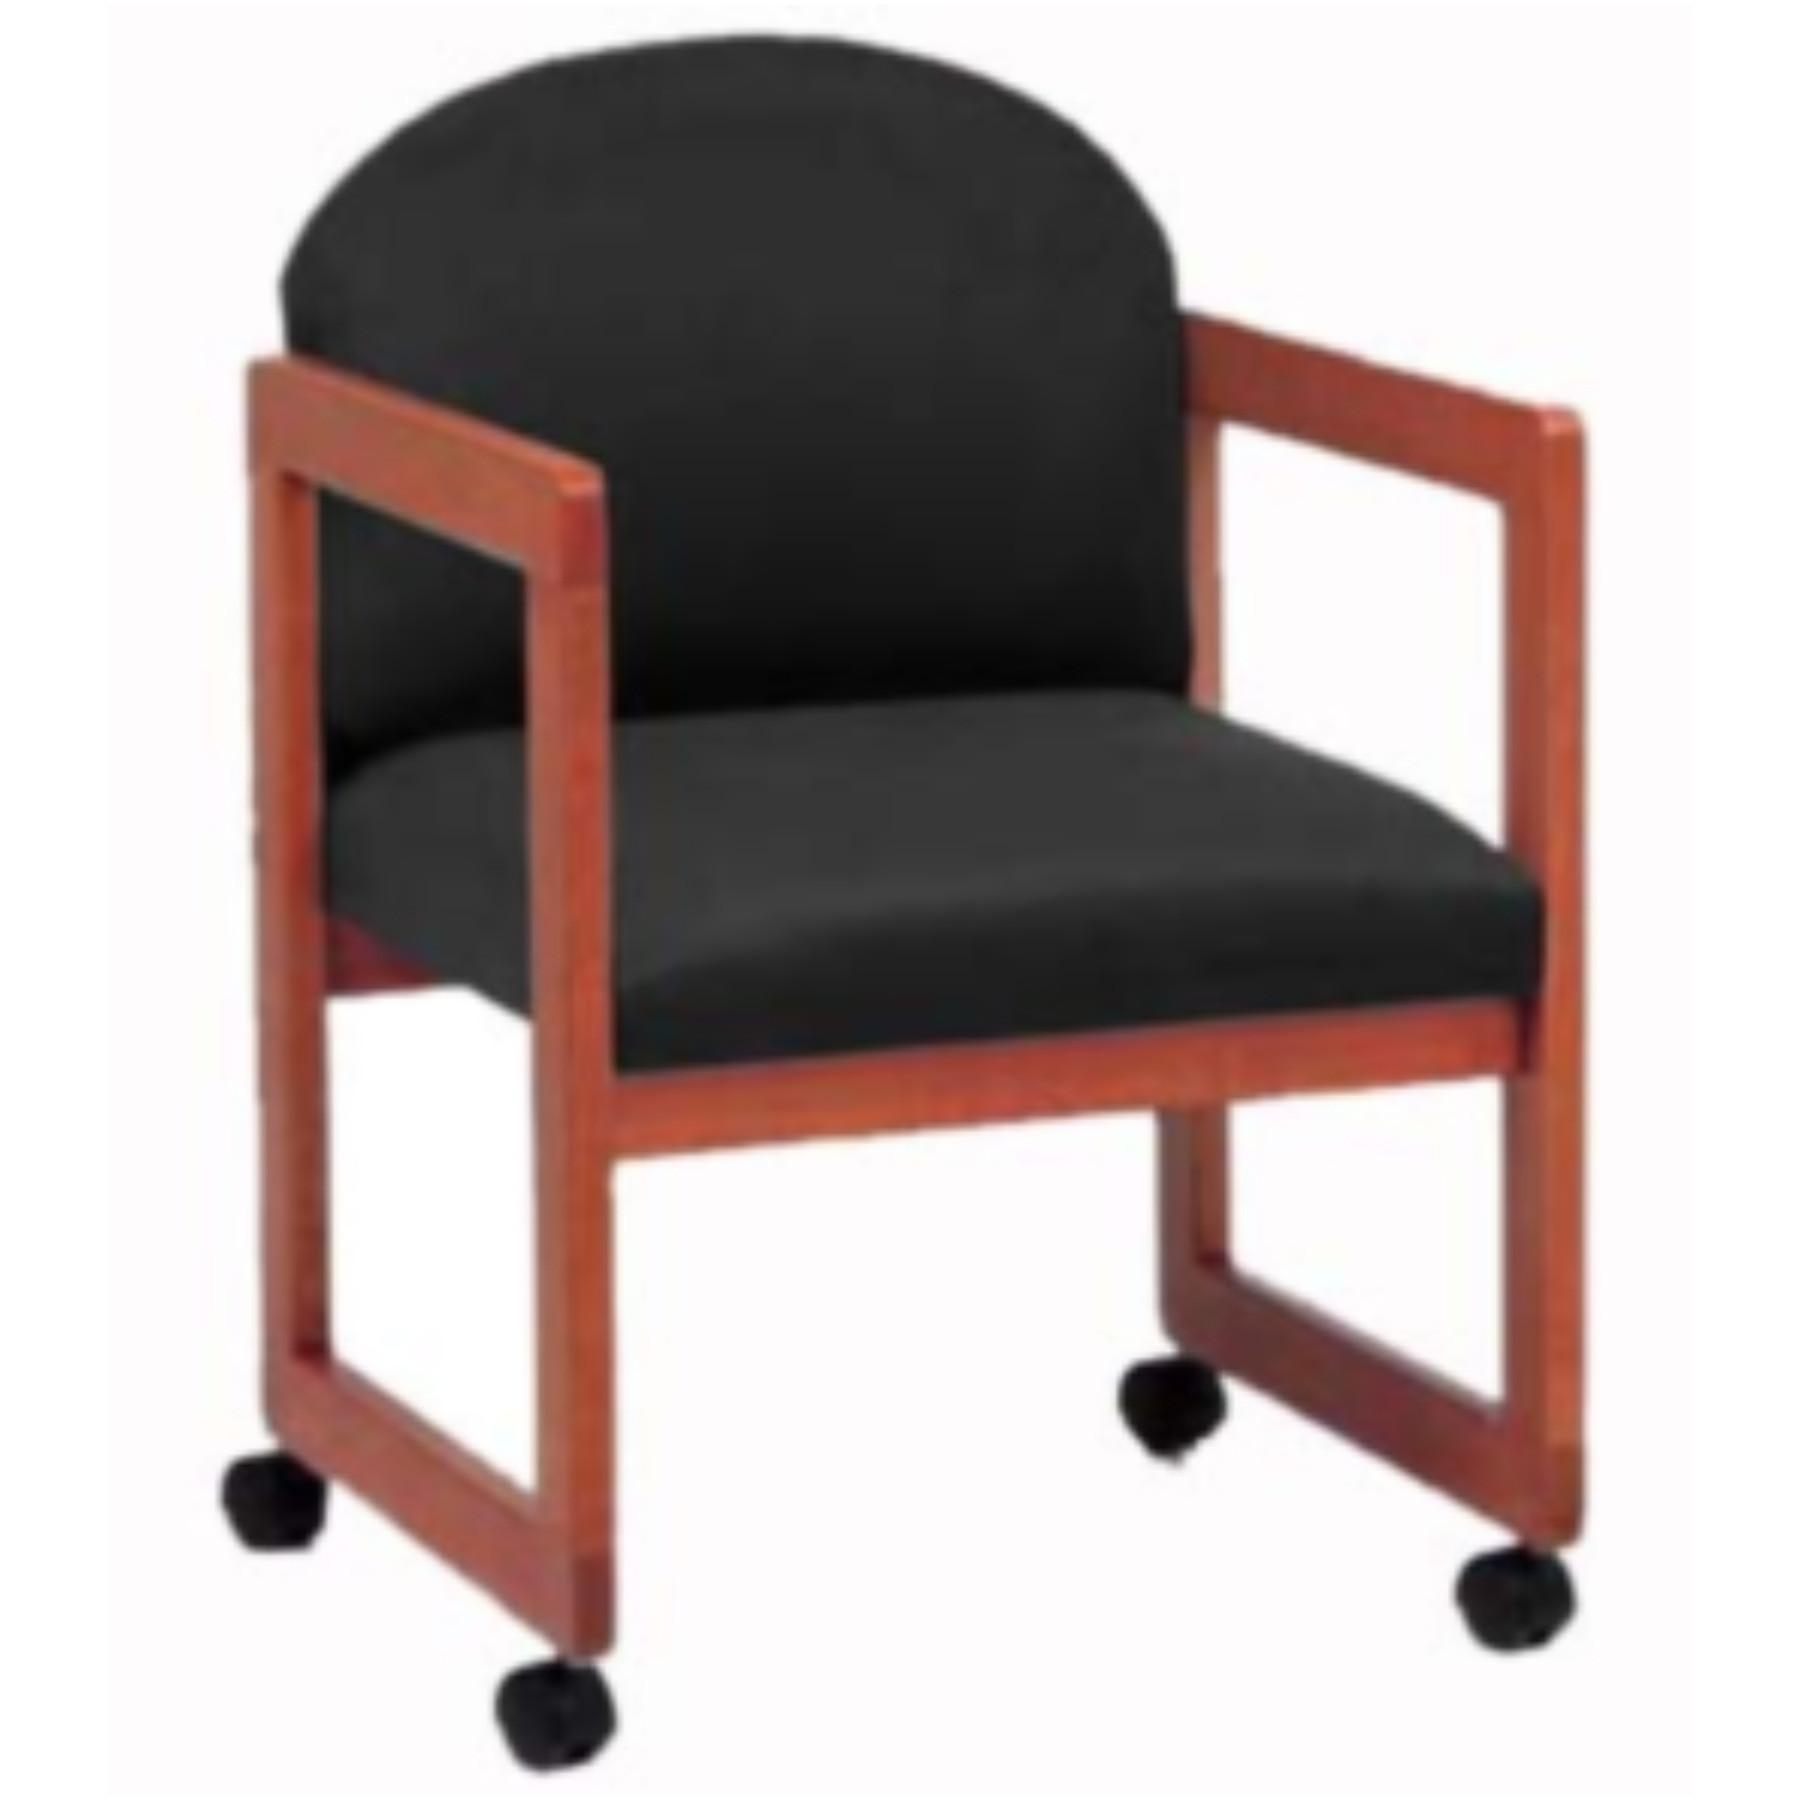 Modern Office Arm Chair Casters Upgrade Fabric